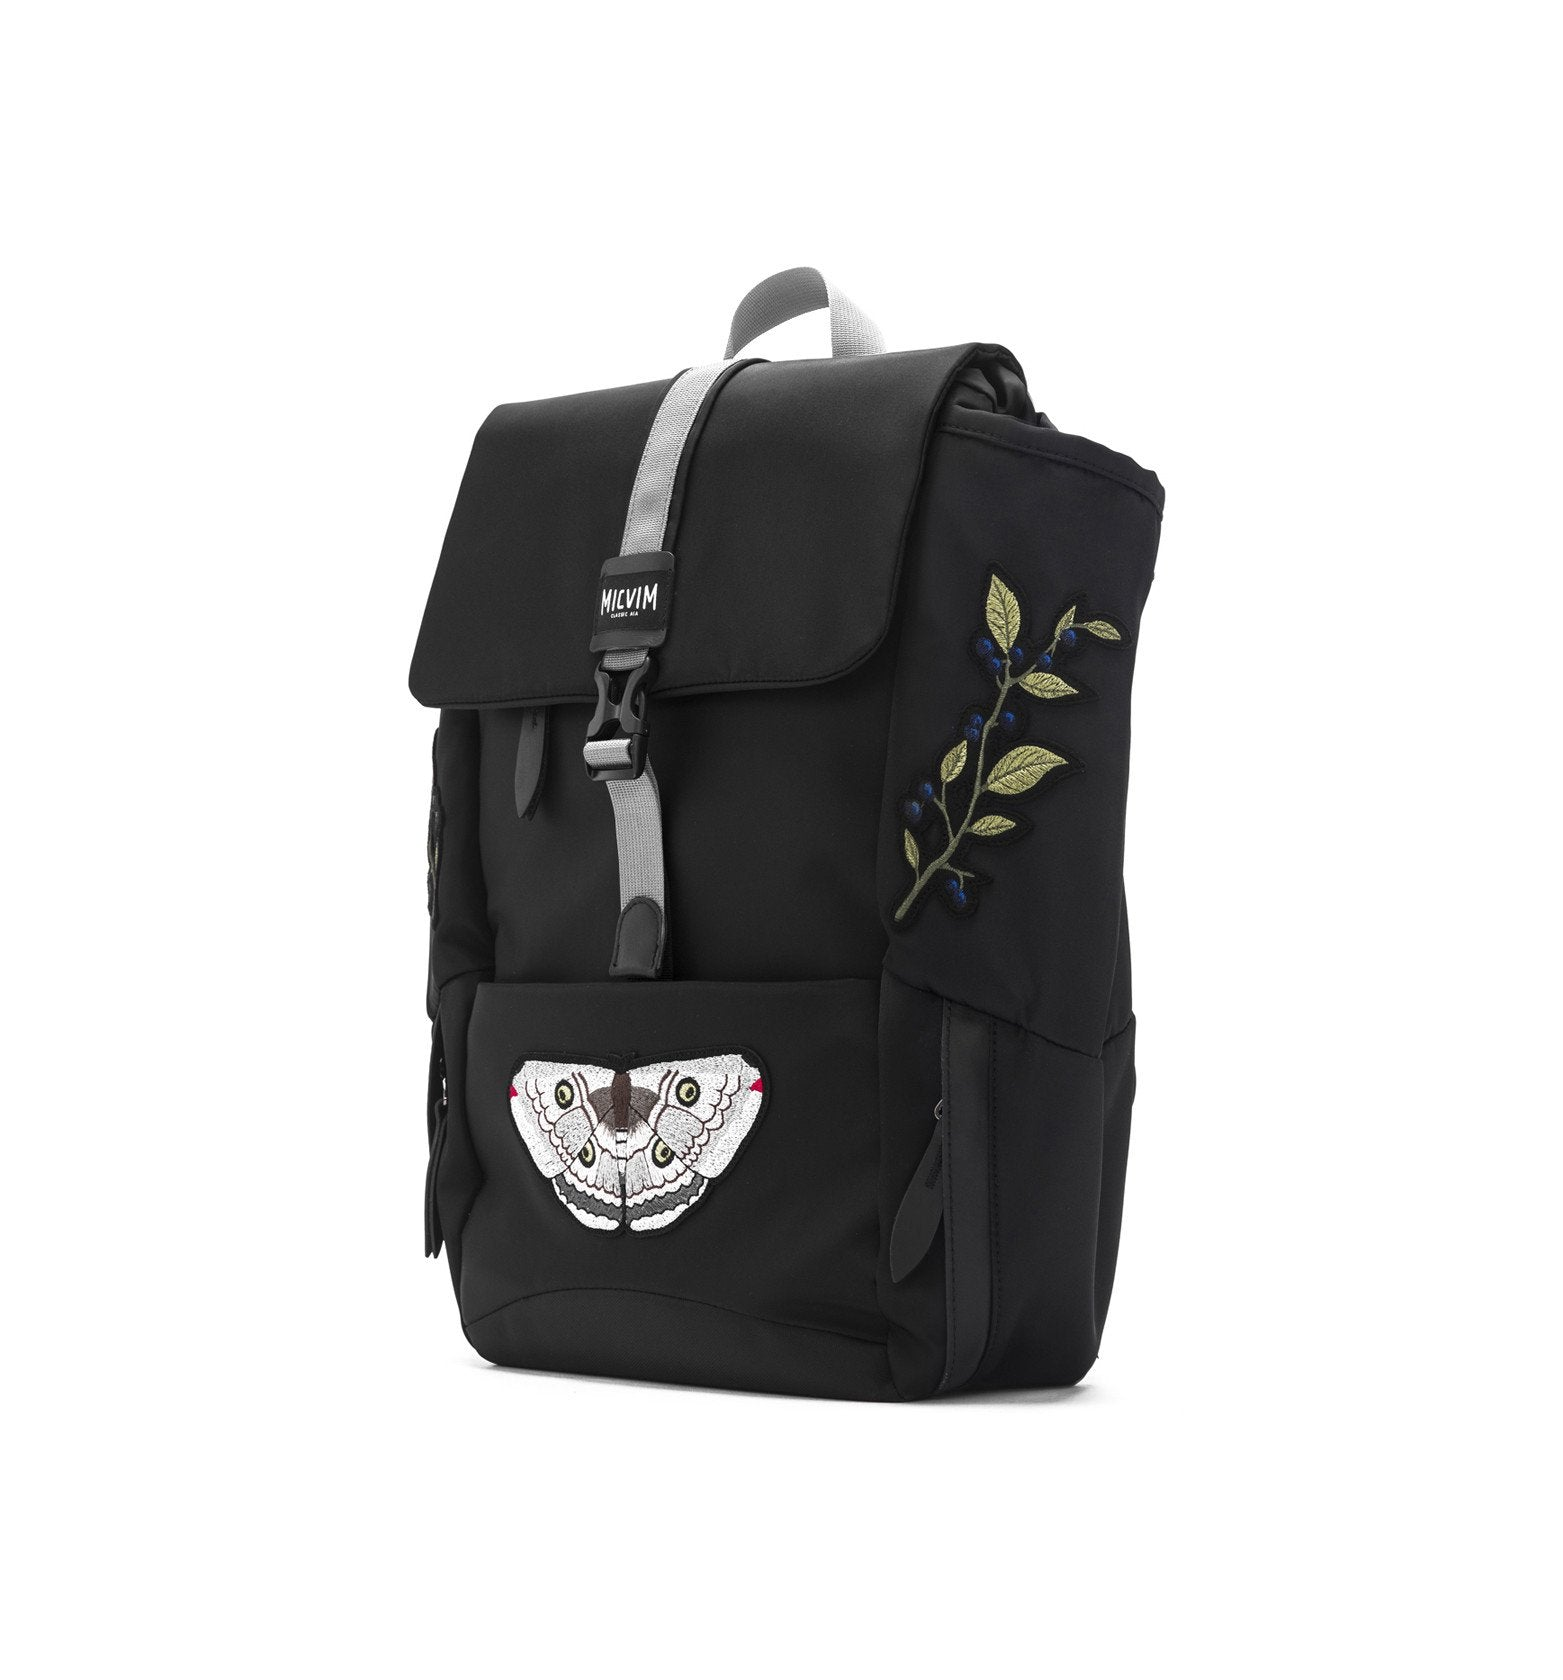 Classic Ala Backpack with Embroidery (Online Exclusive)